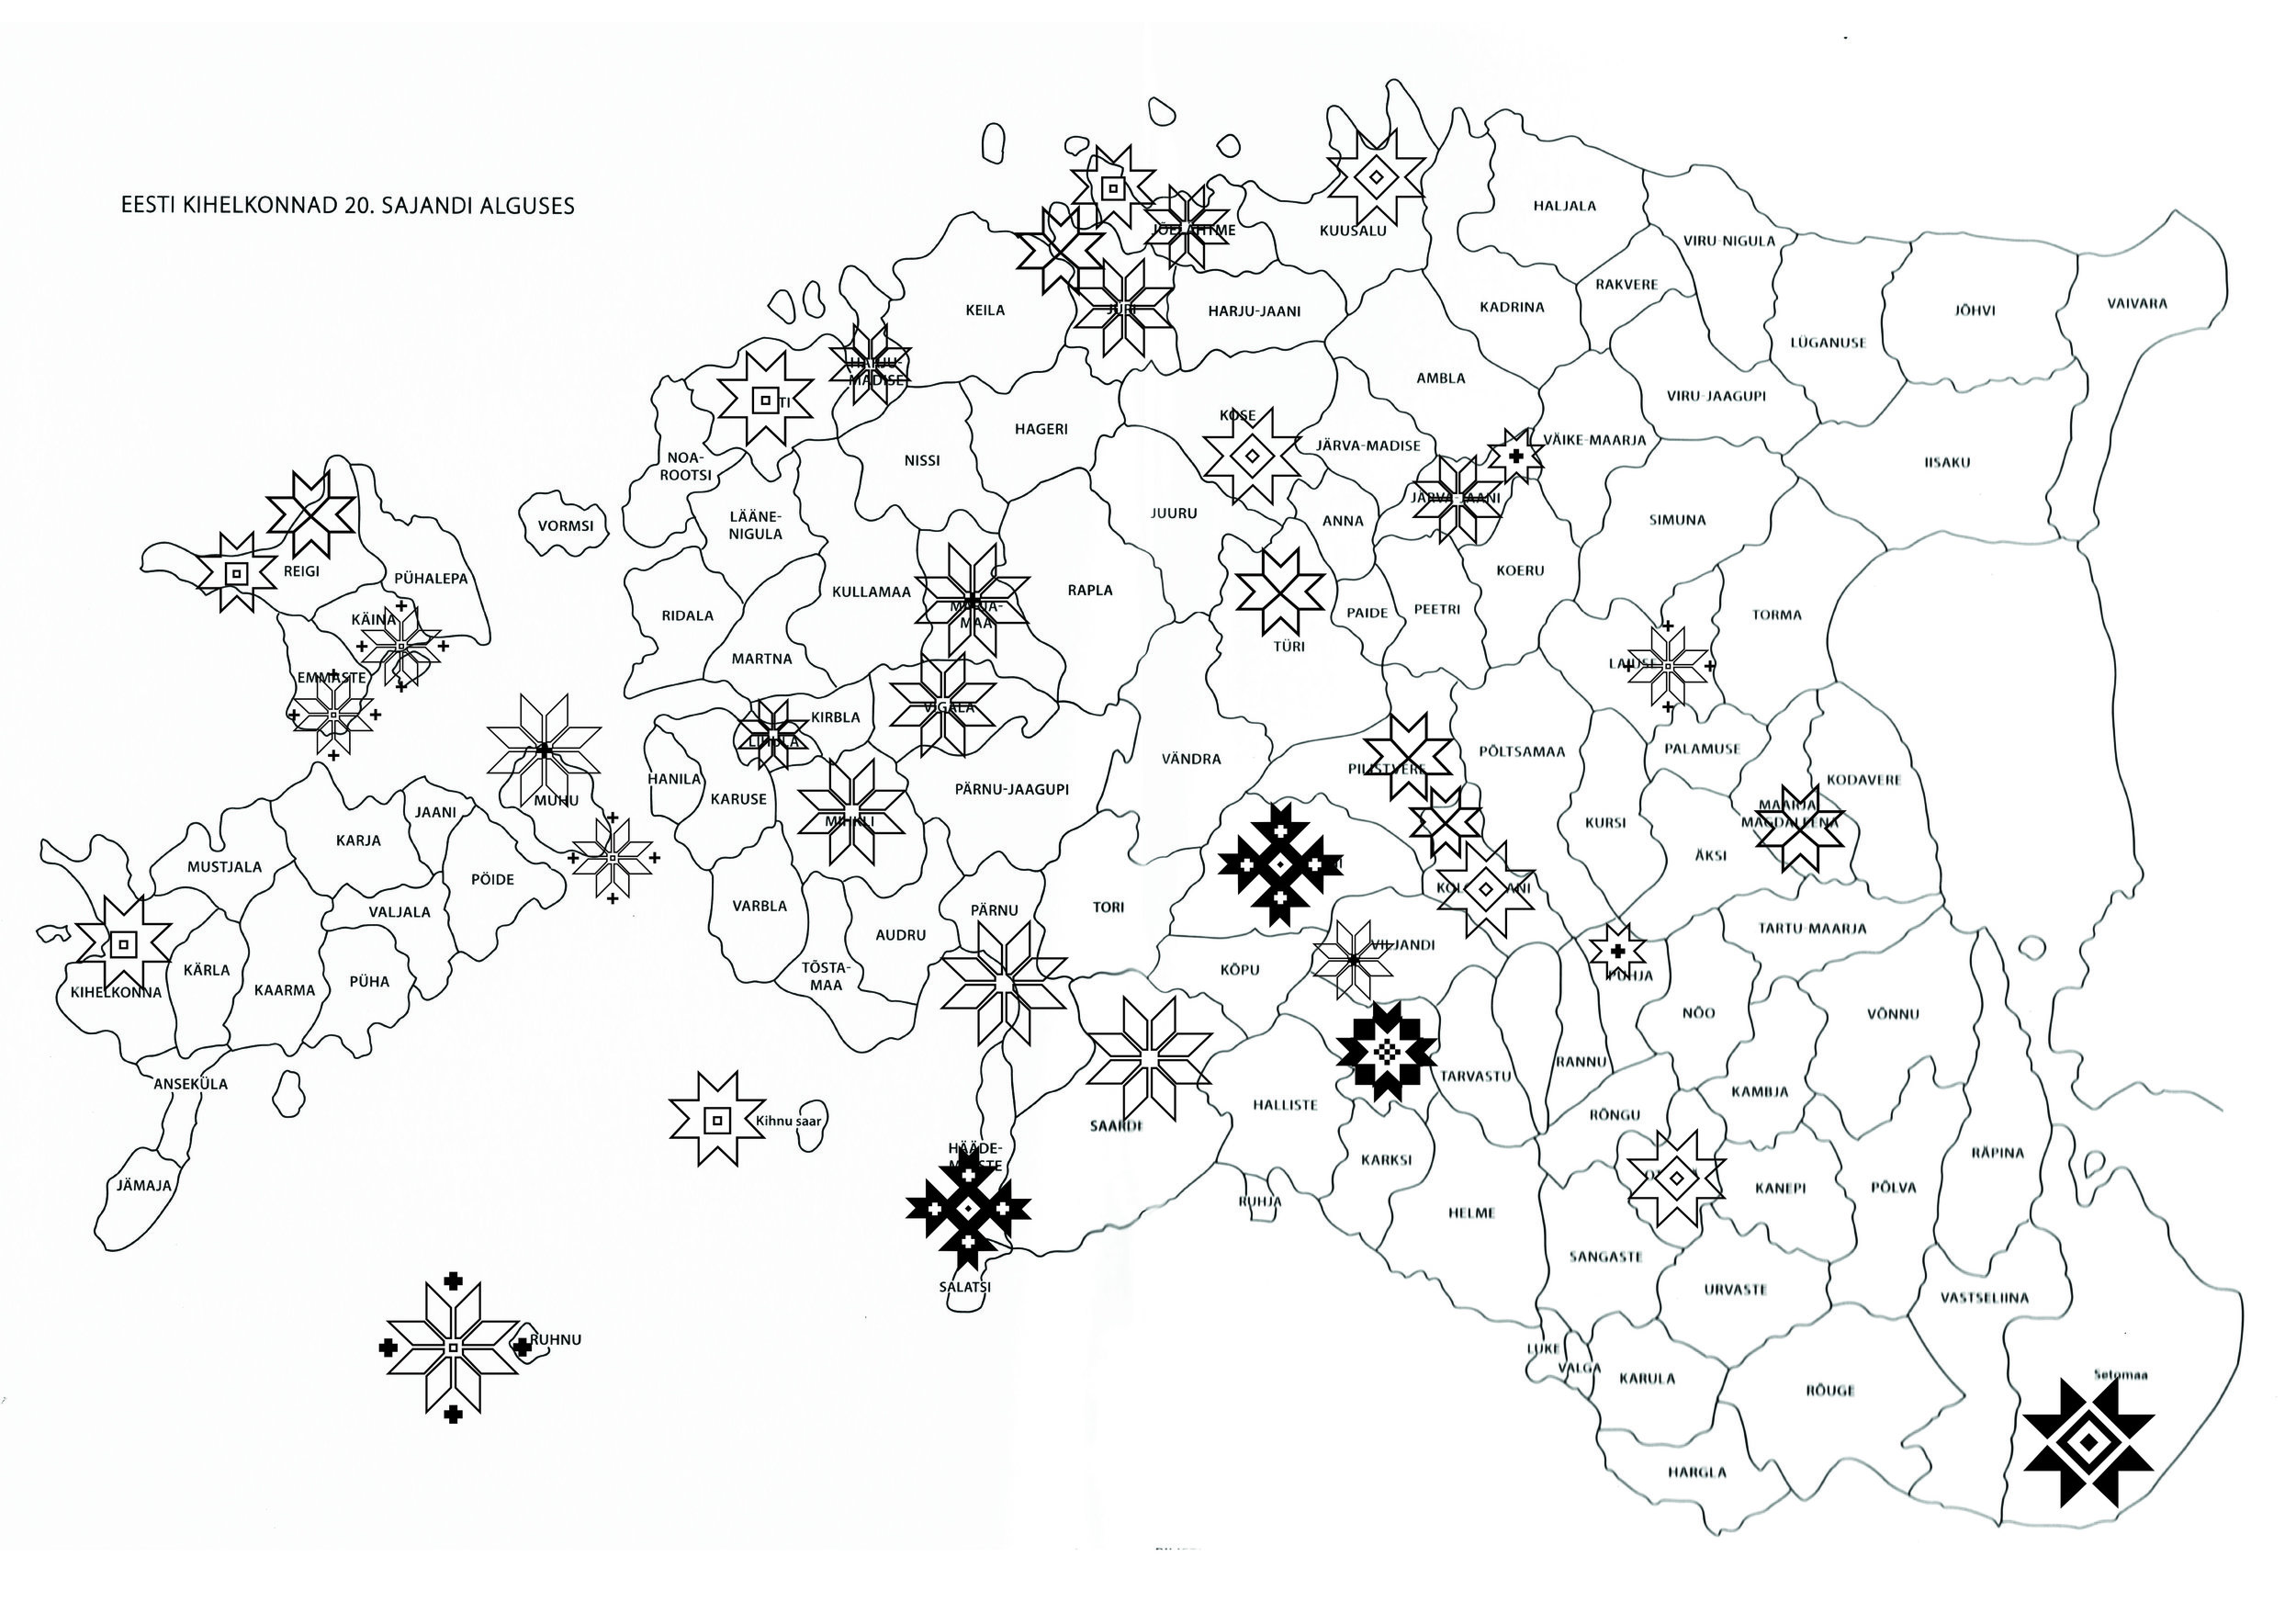 Map of Estonian parishes in the beginning of the 20th century overlaid with motifs.